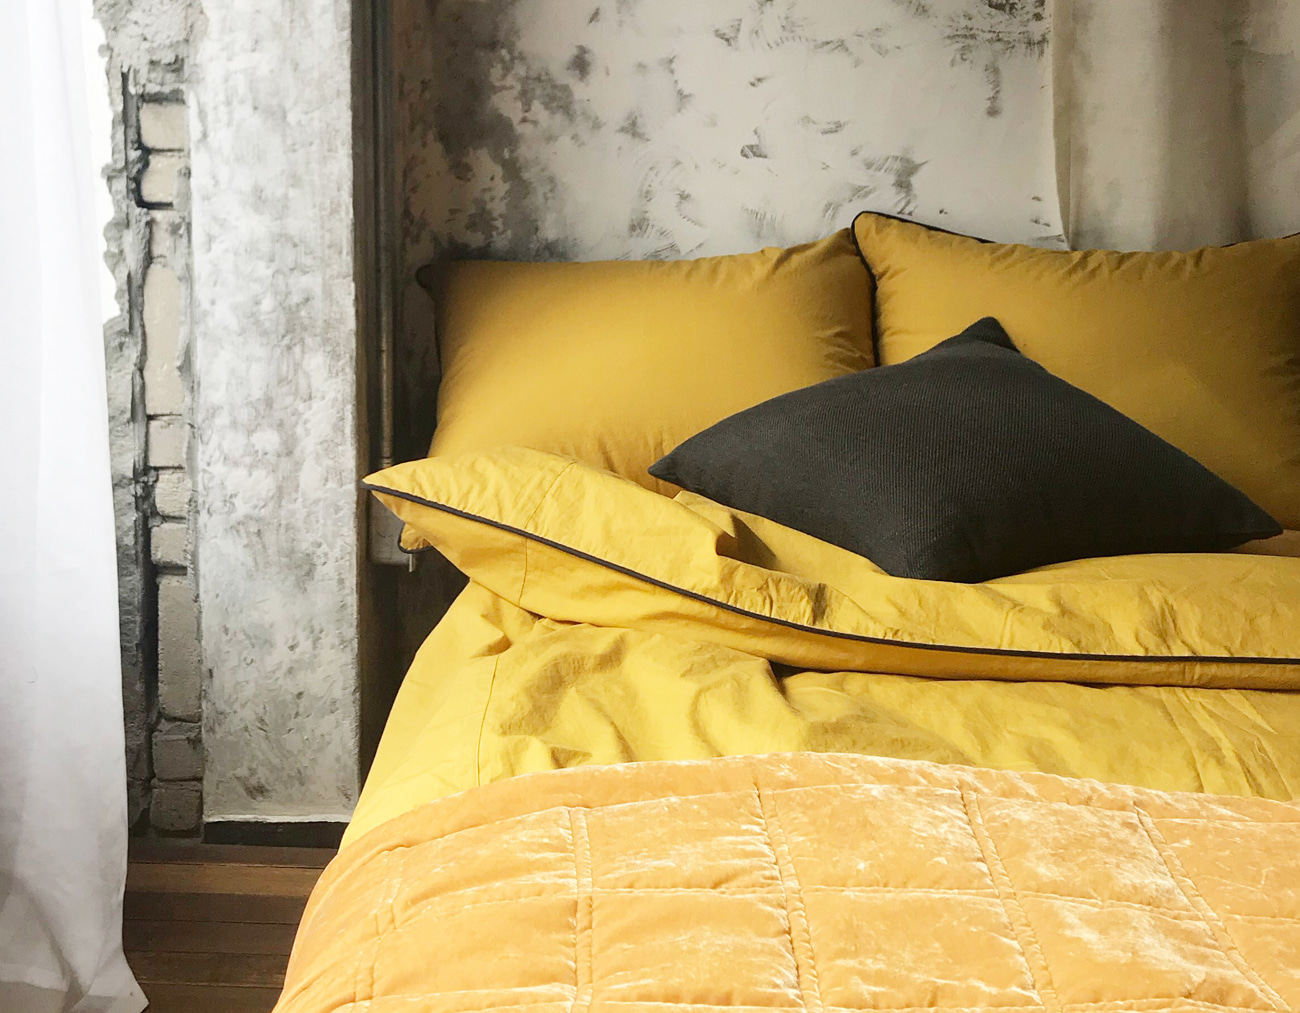 WASHING COTTON DUVET COVER - MUSTARD/GRAY